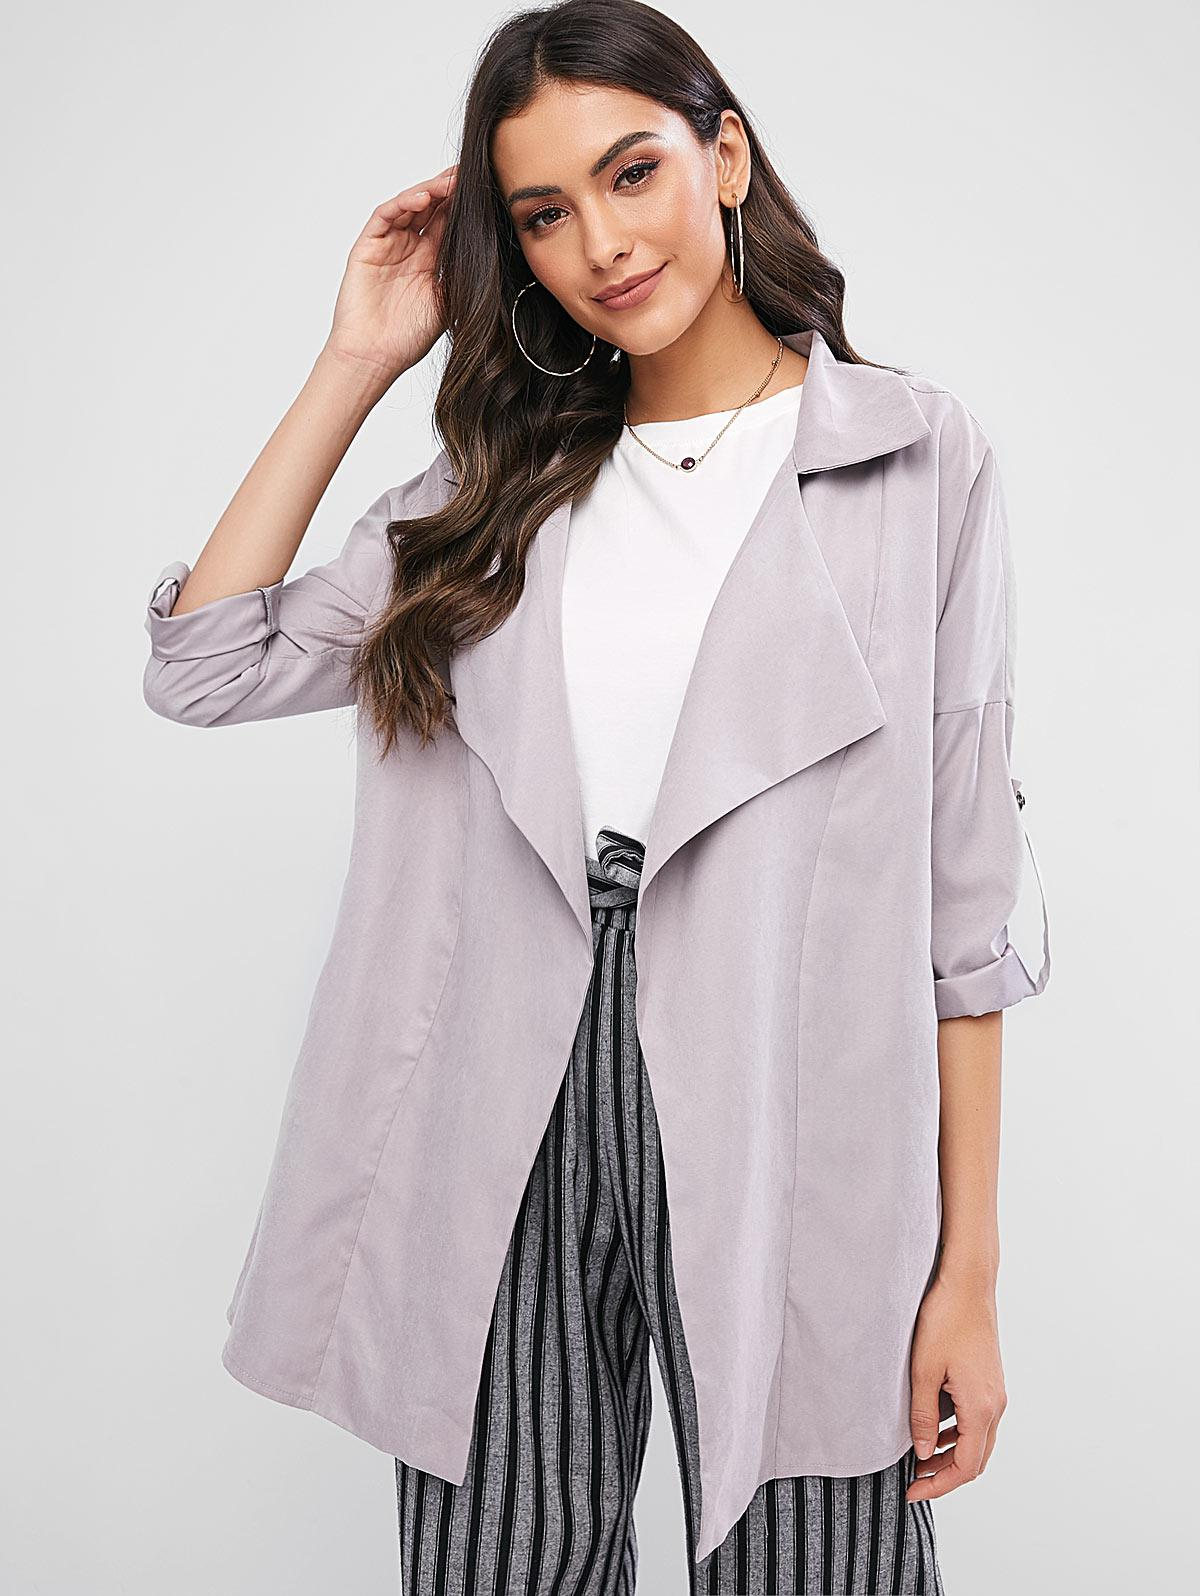 ZAFUL Pockets Buttoned Sleeve Tabs Open Front Coat thumbnail